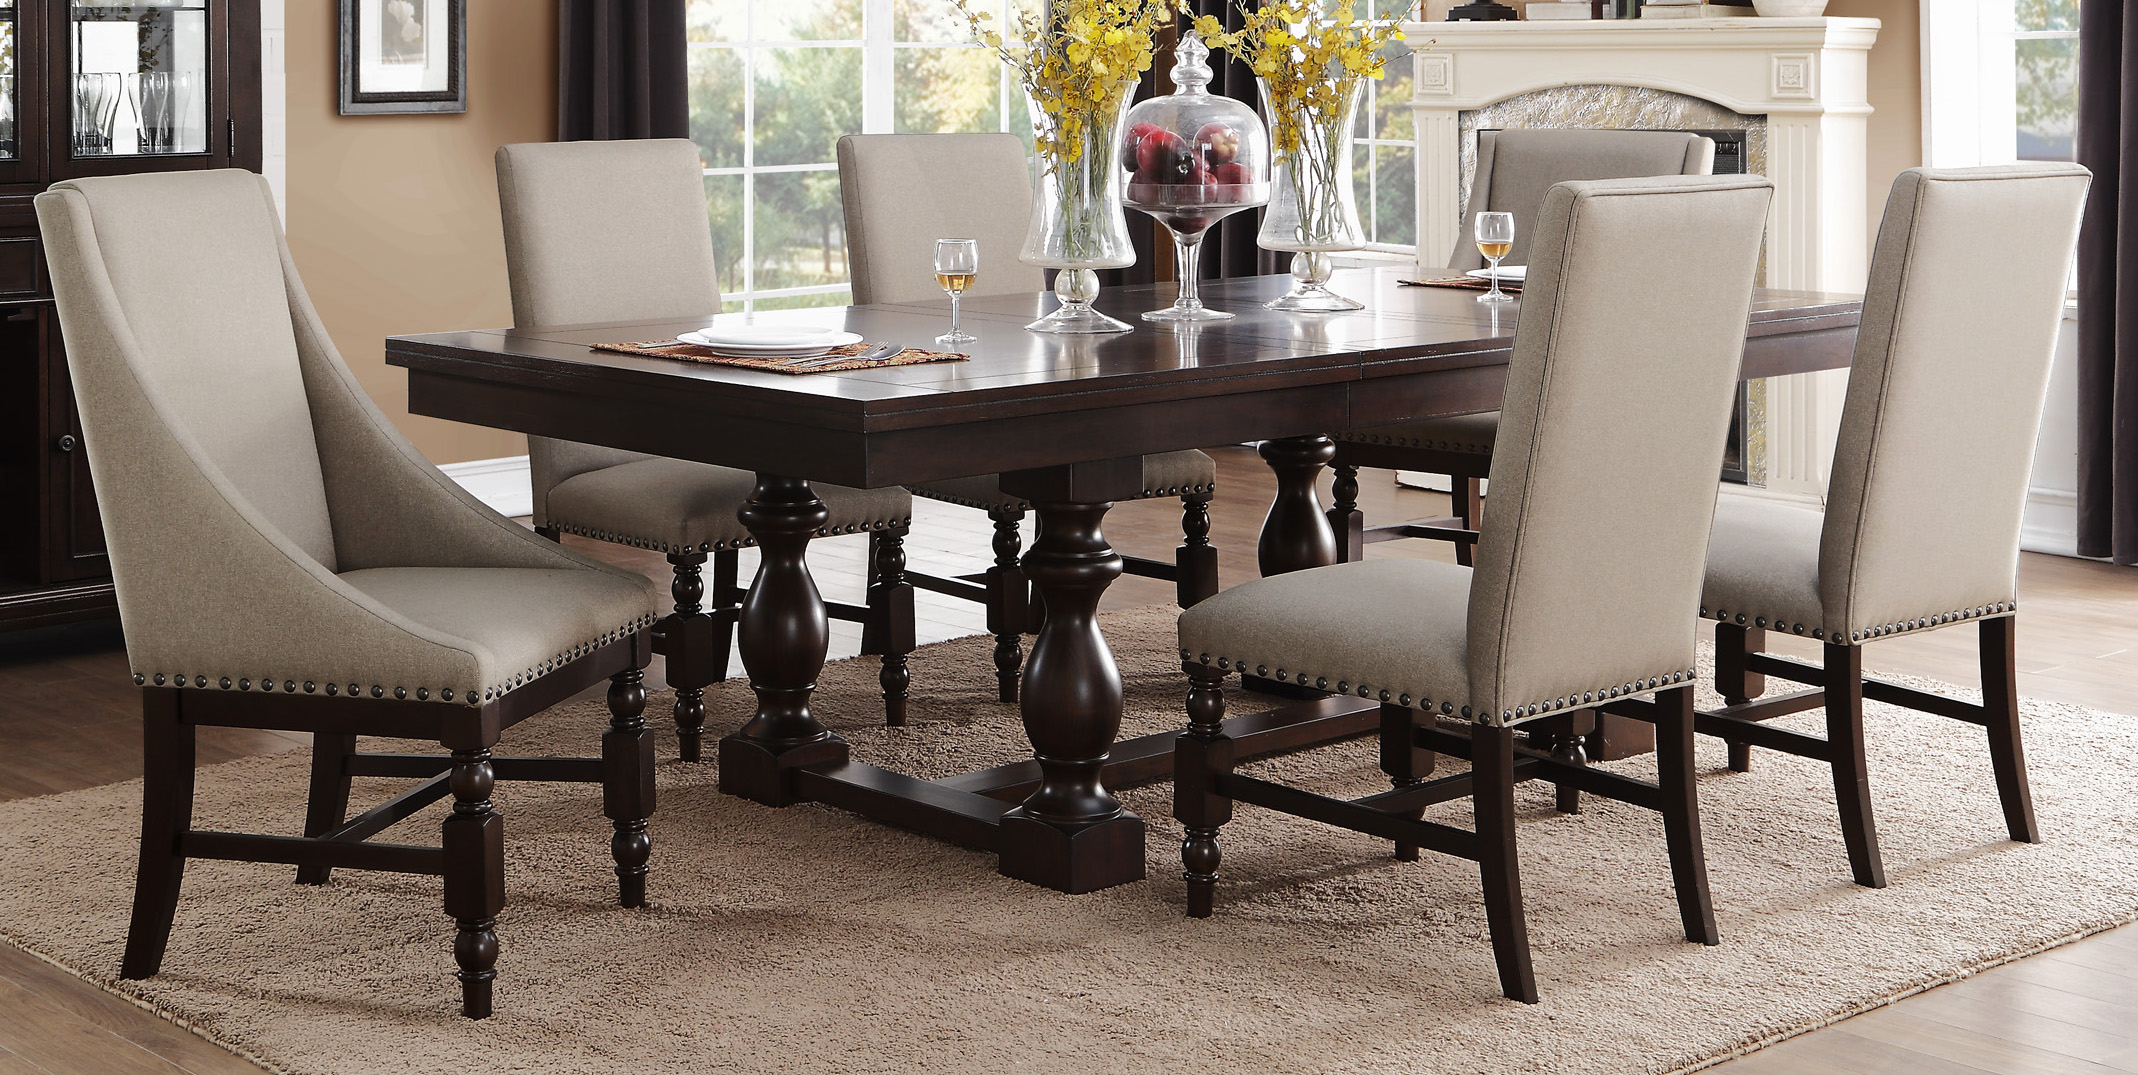 Awesome Formal Dining Sets For Sale In OC